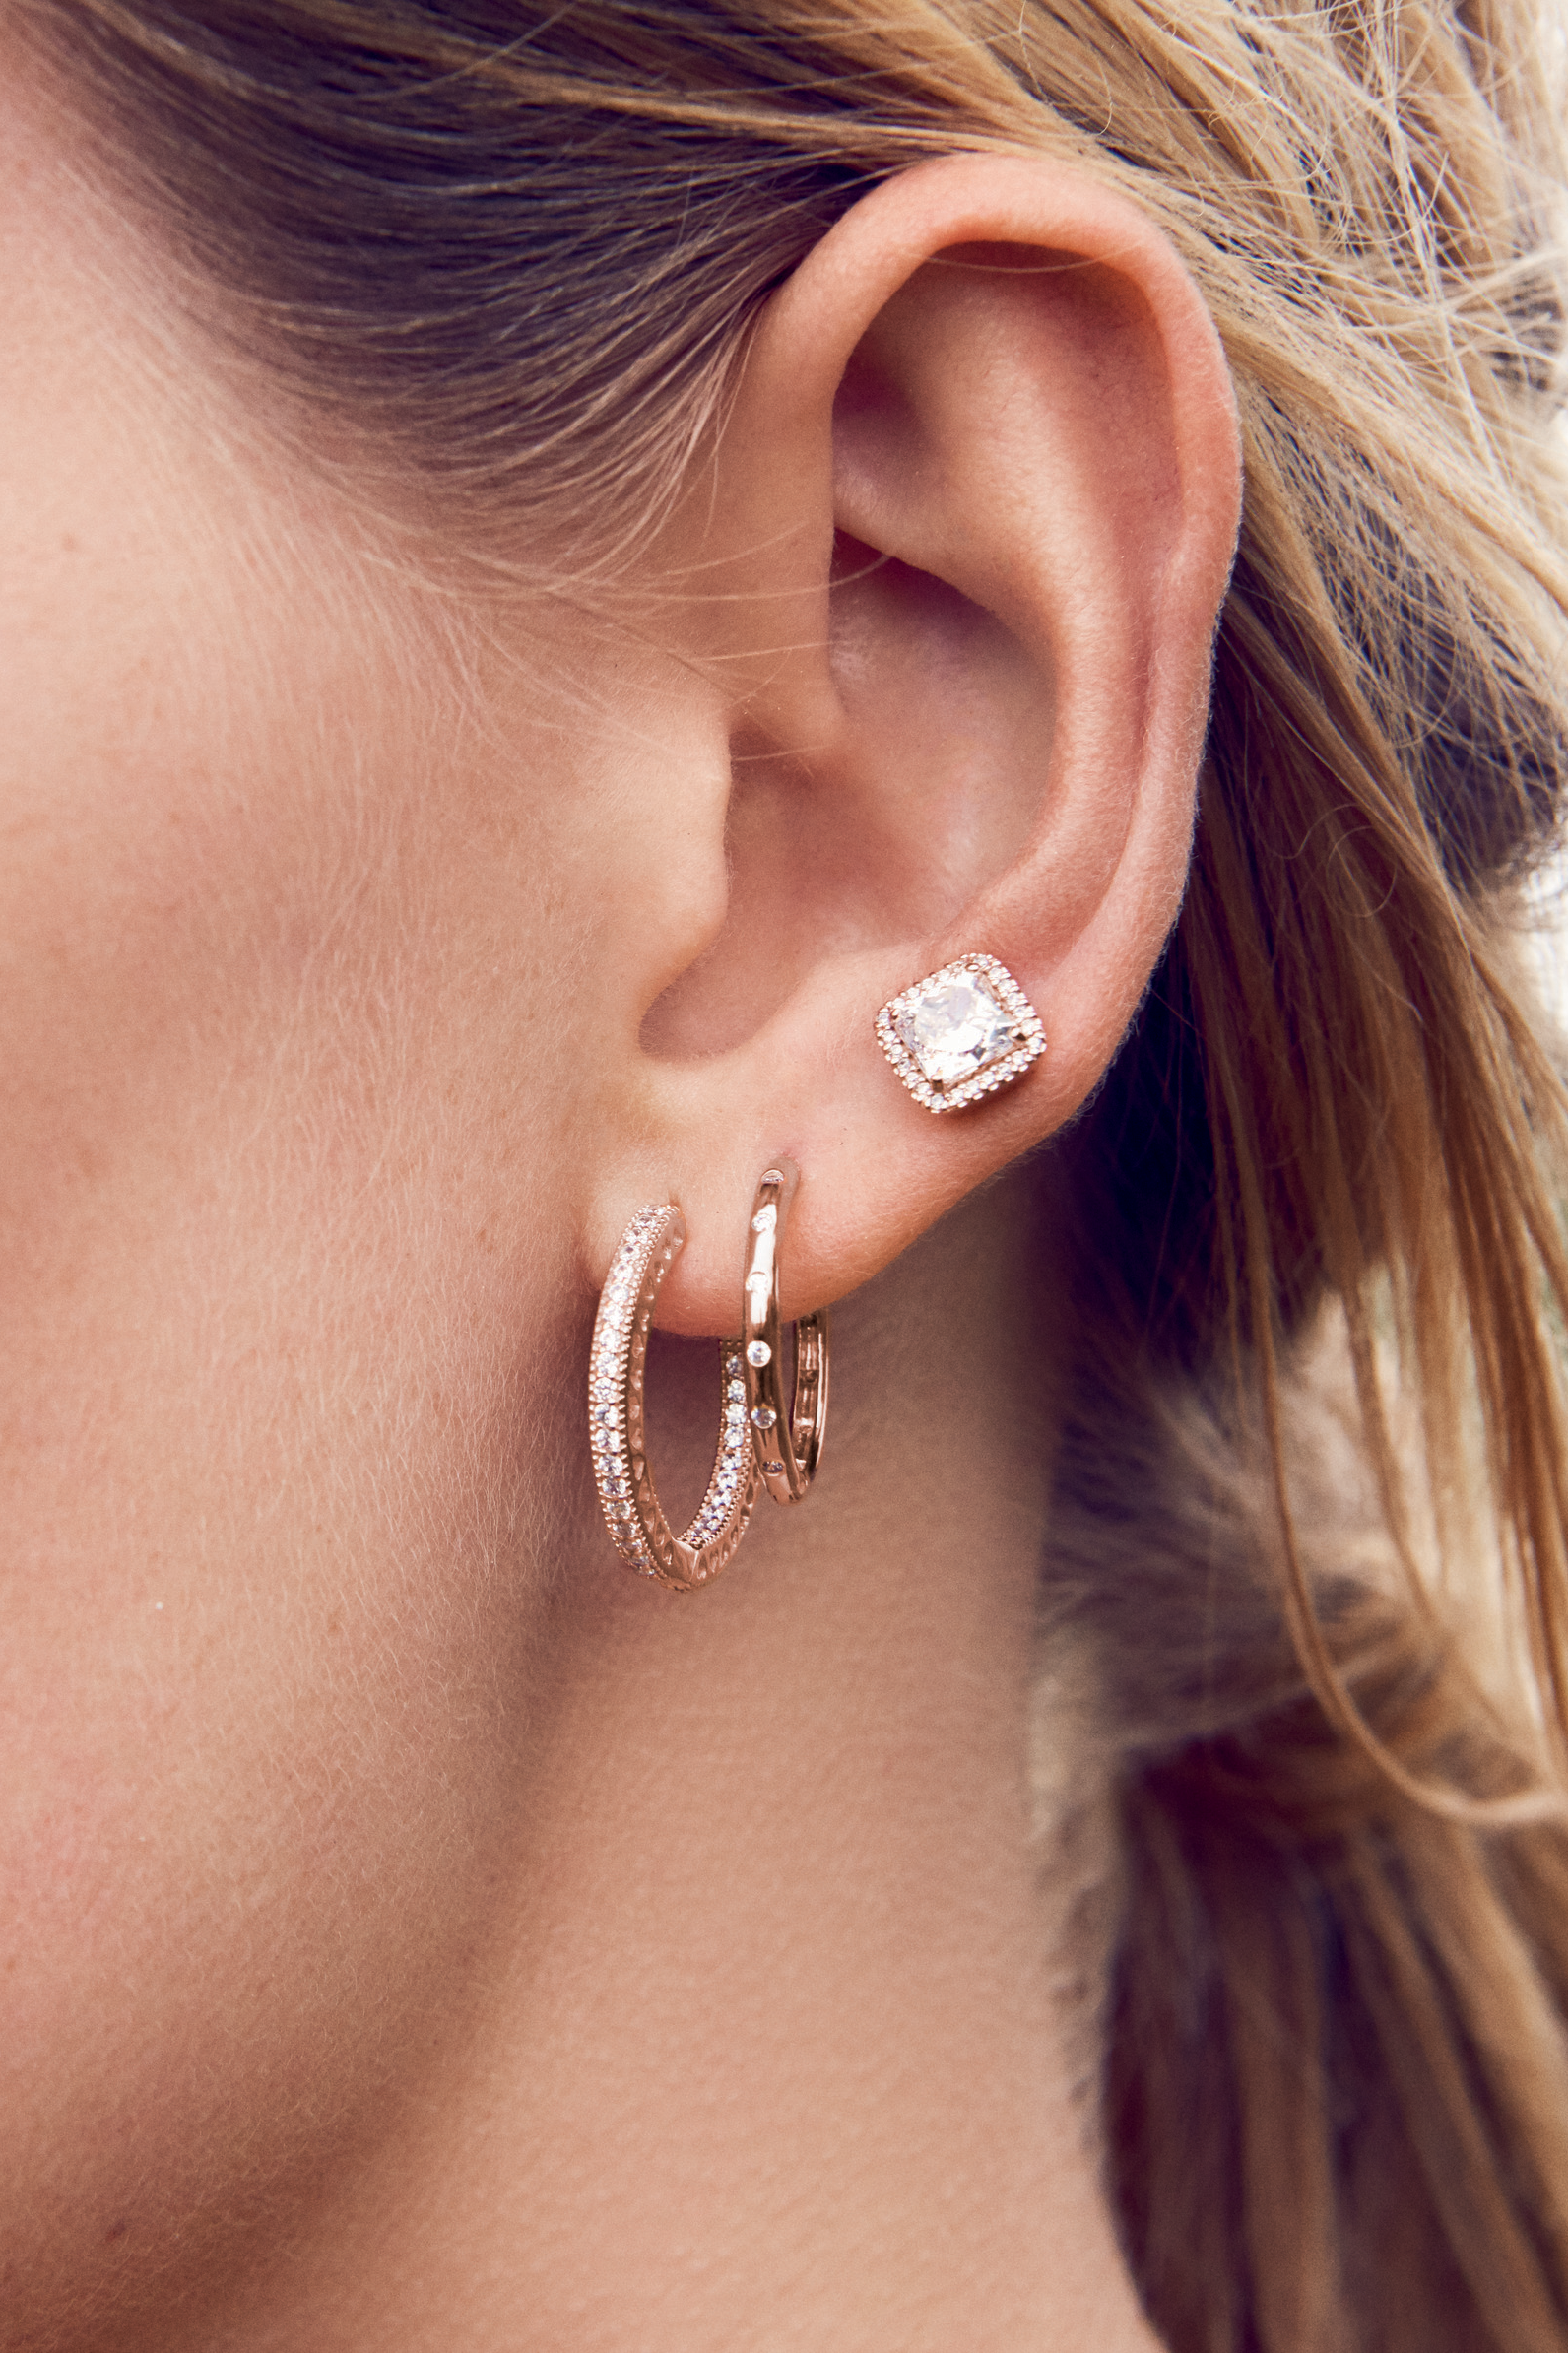 aad2b4882 Mix and match PANDORA Rose earrings for a classy look this season. Combine  hand-finished hoops and shimmering studs - the perfect day-to-night look!